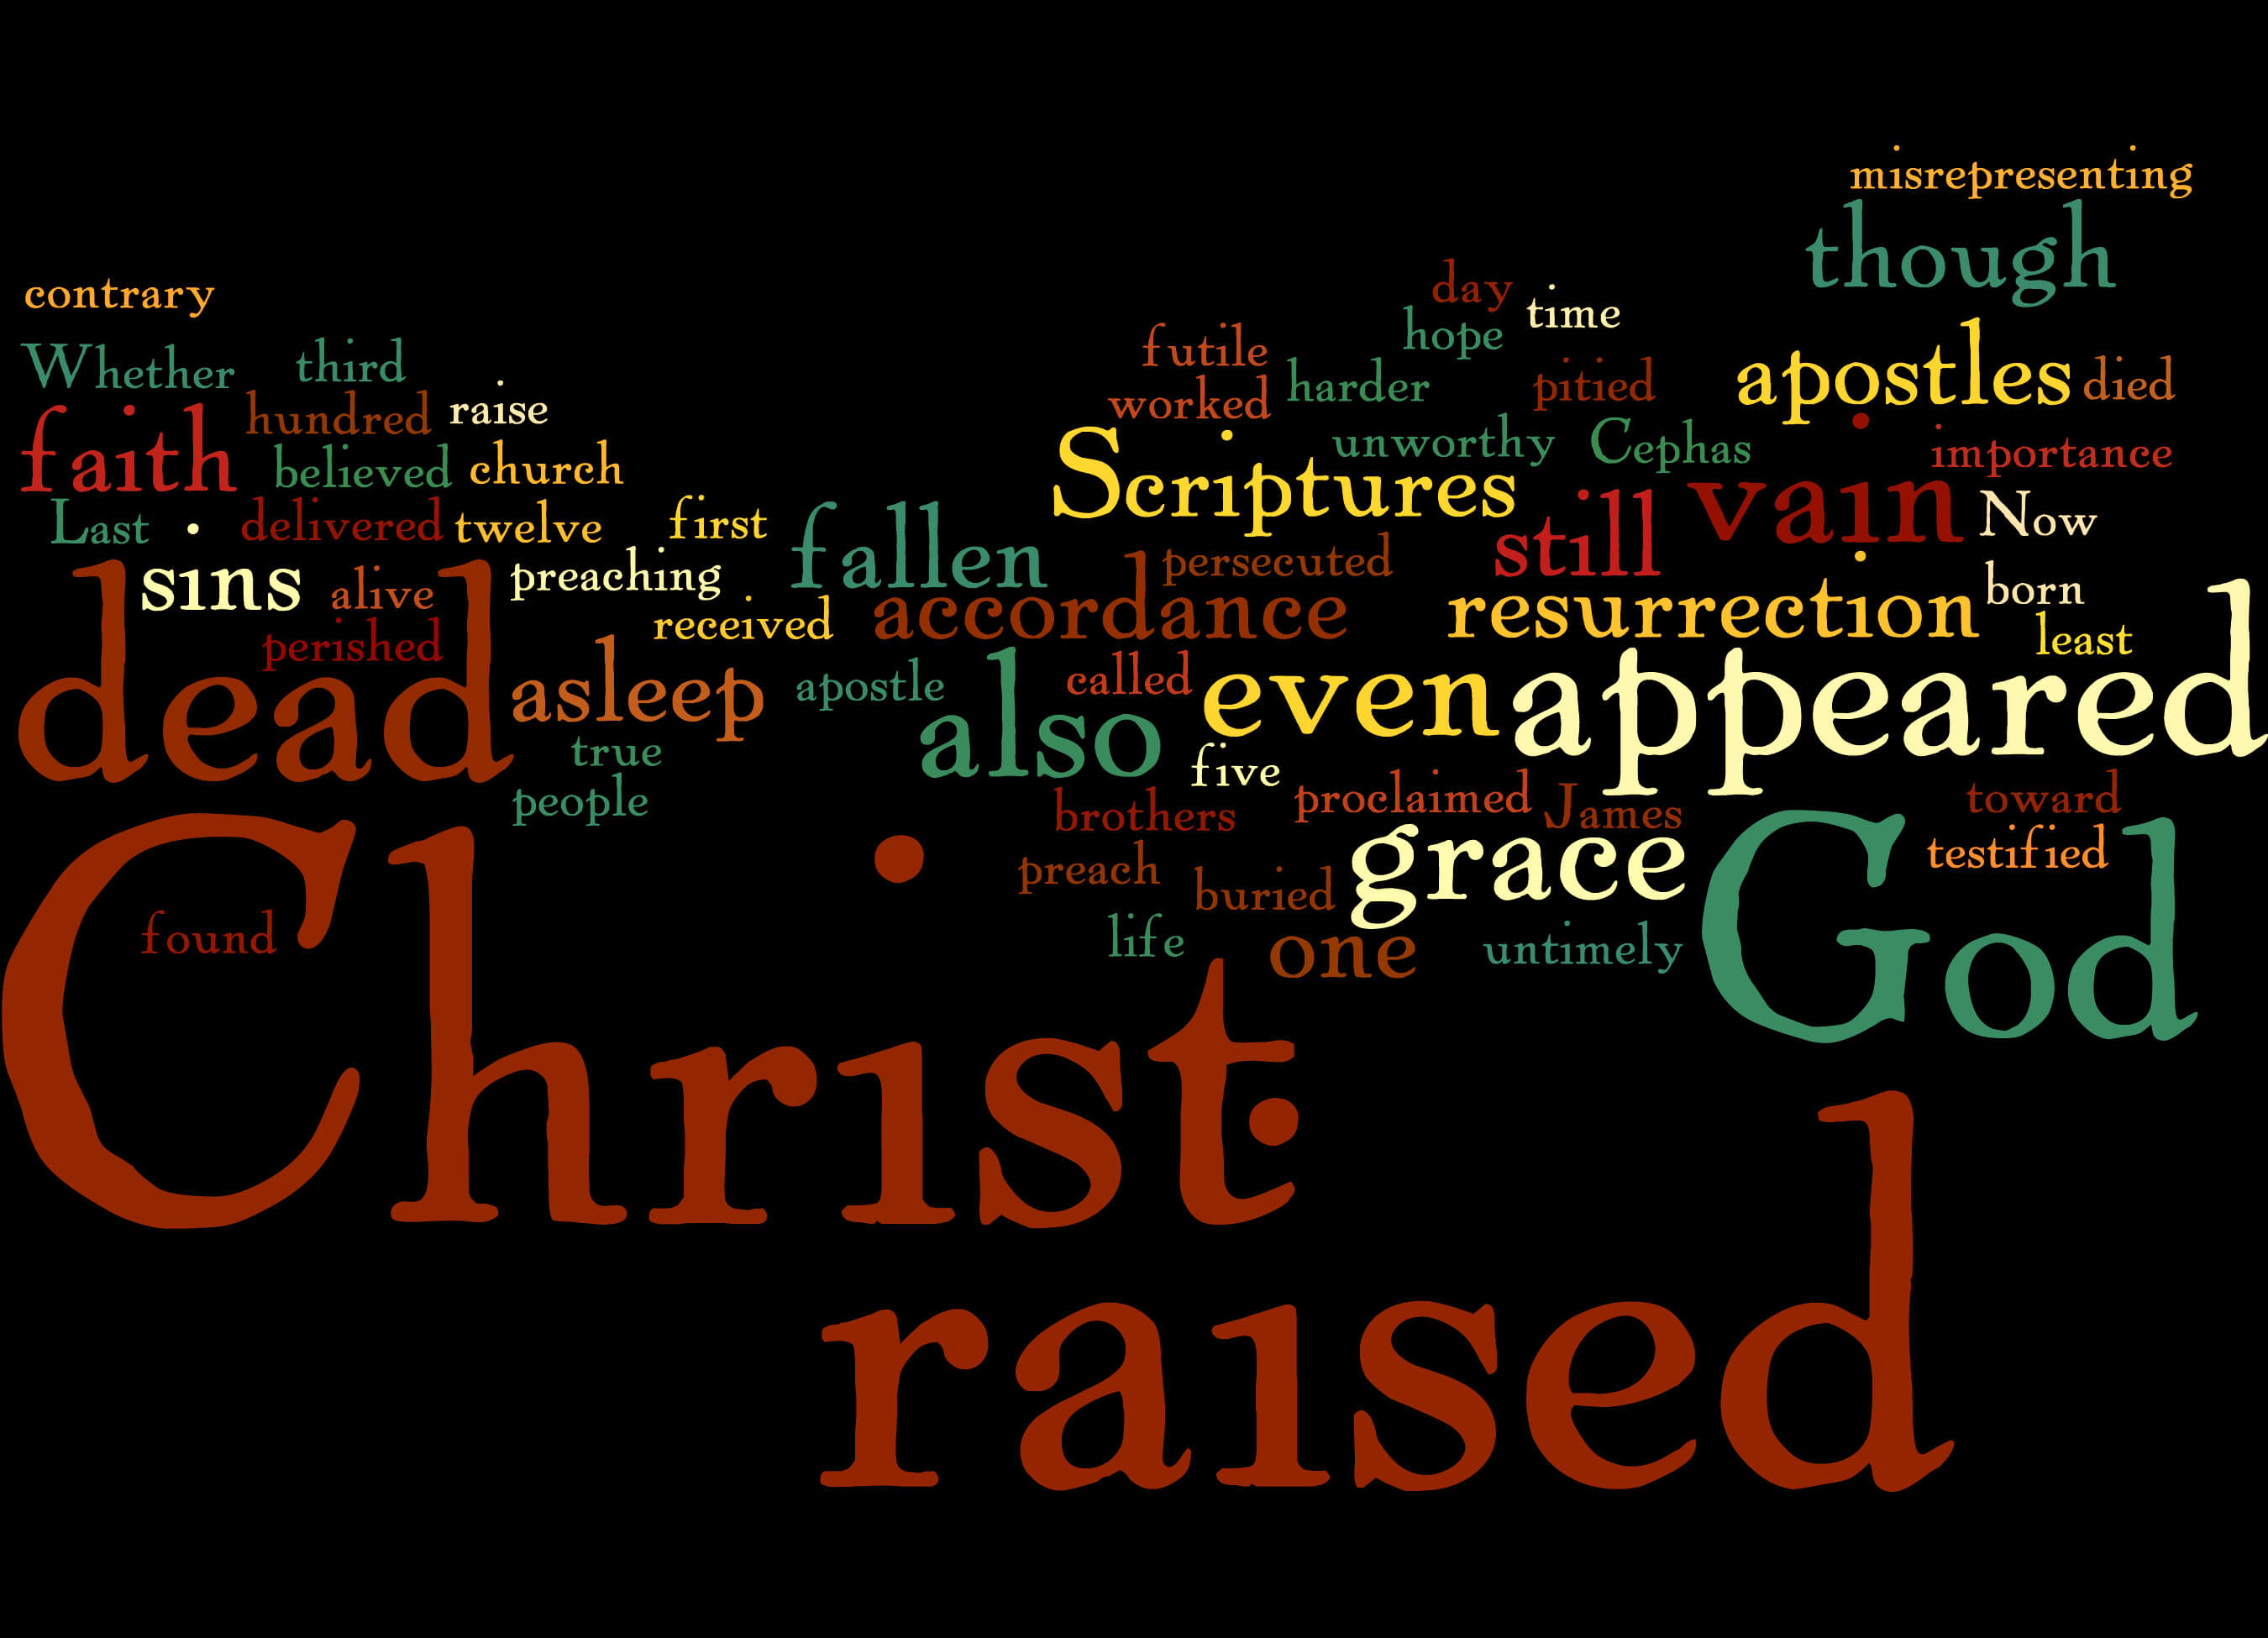 Easter Jesus Risen 1 Corinthians 15 1 19 Words Hd Wallpaper